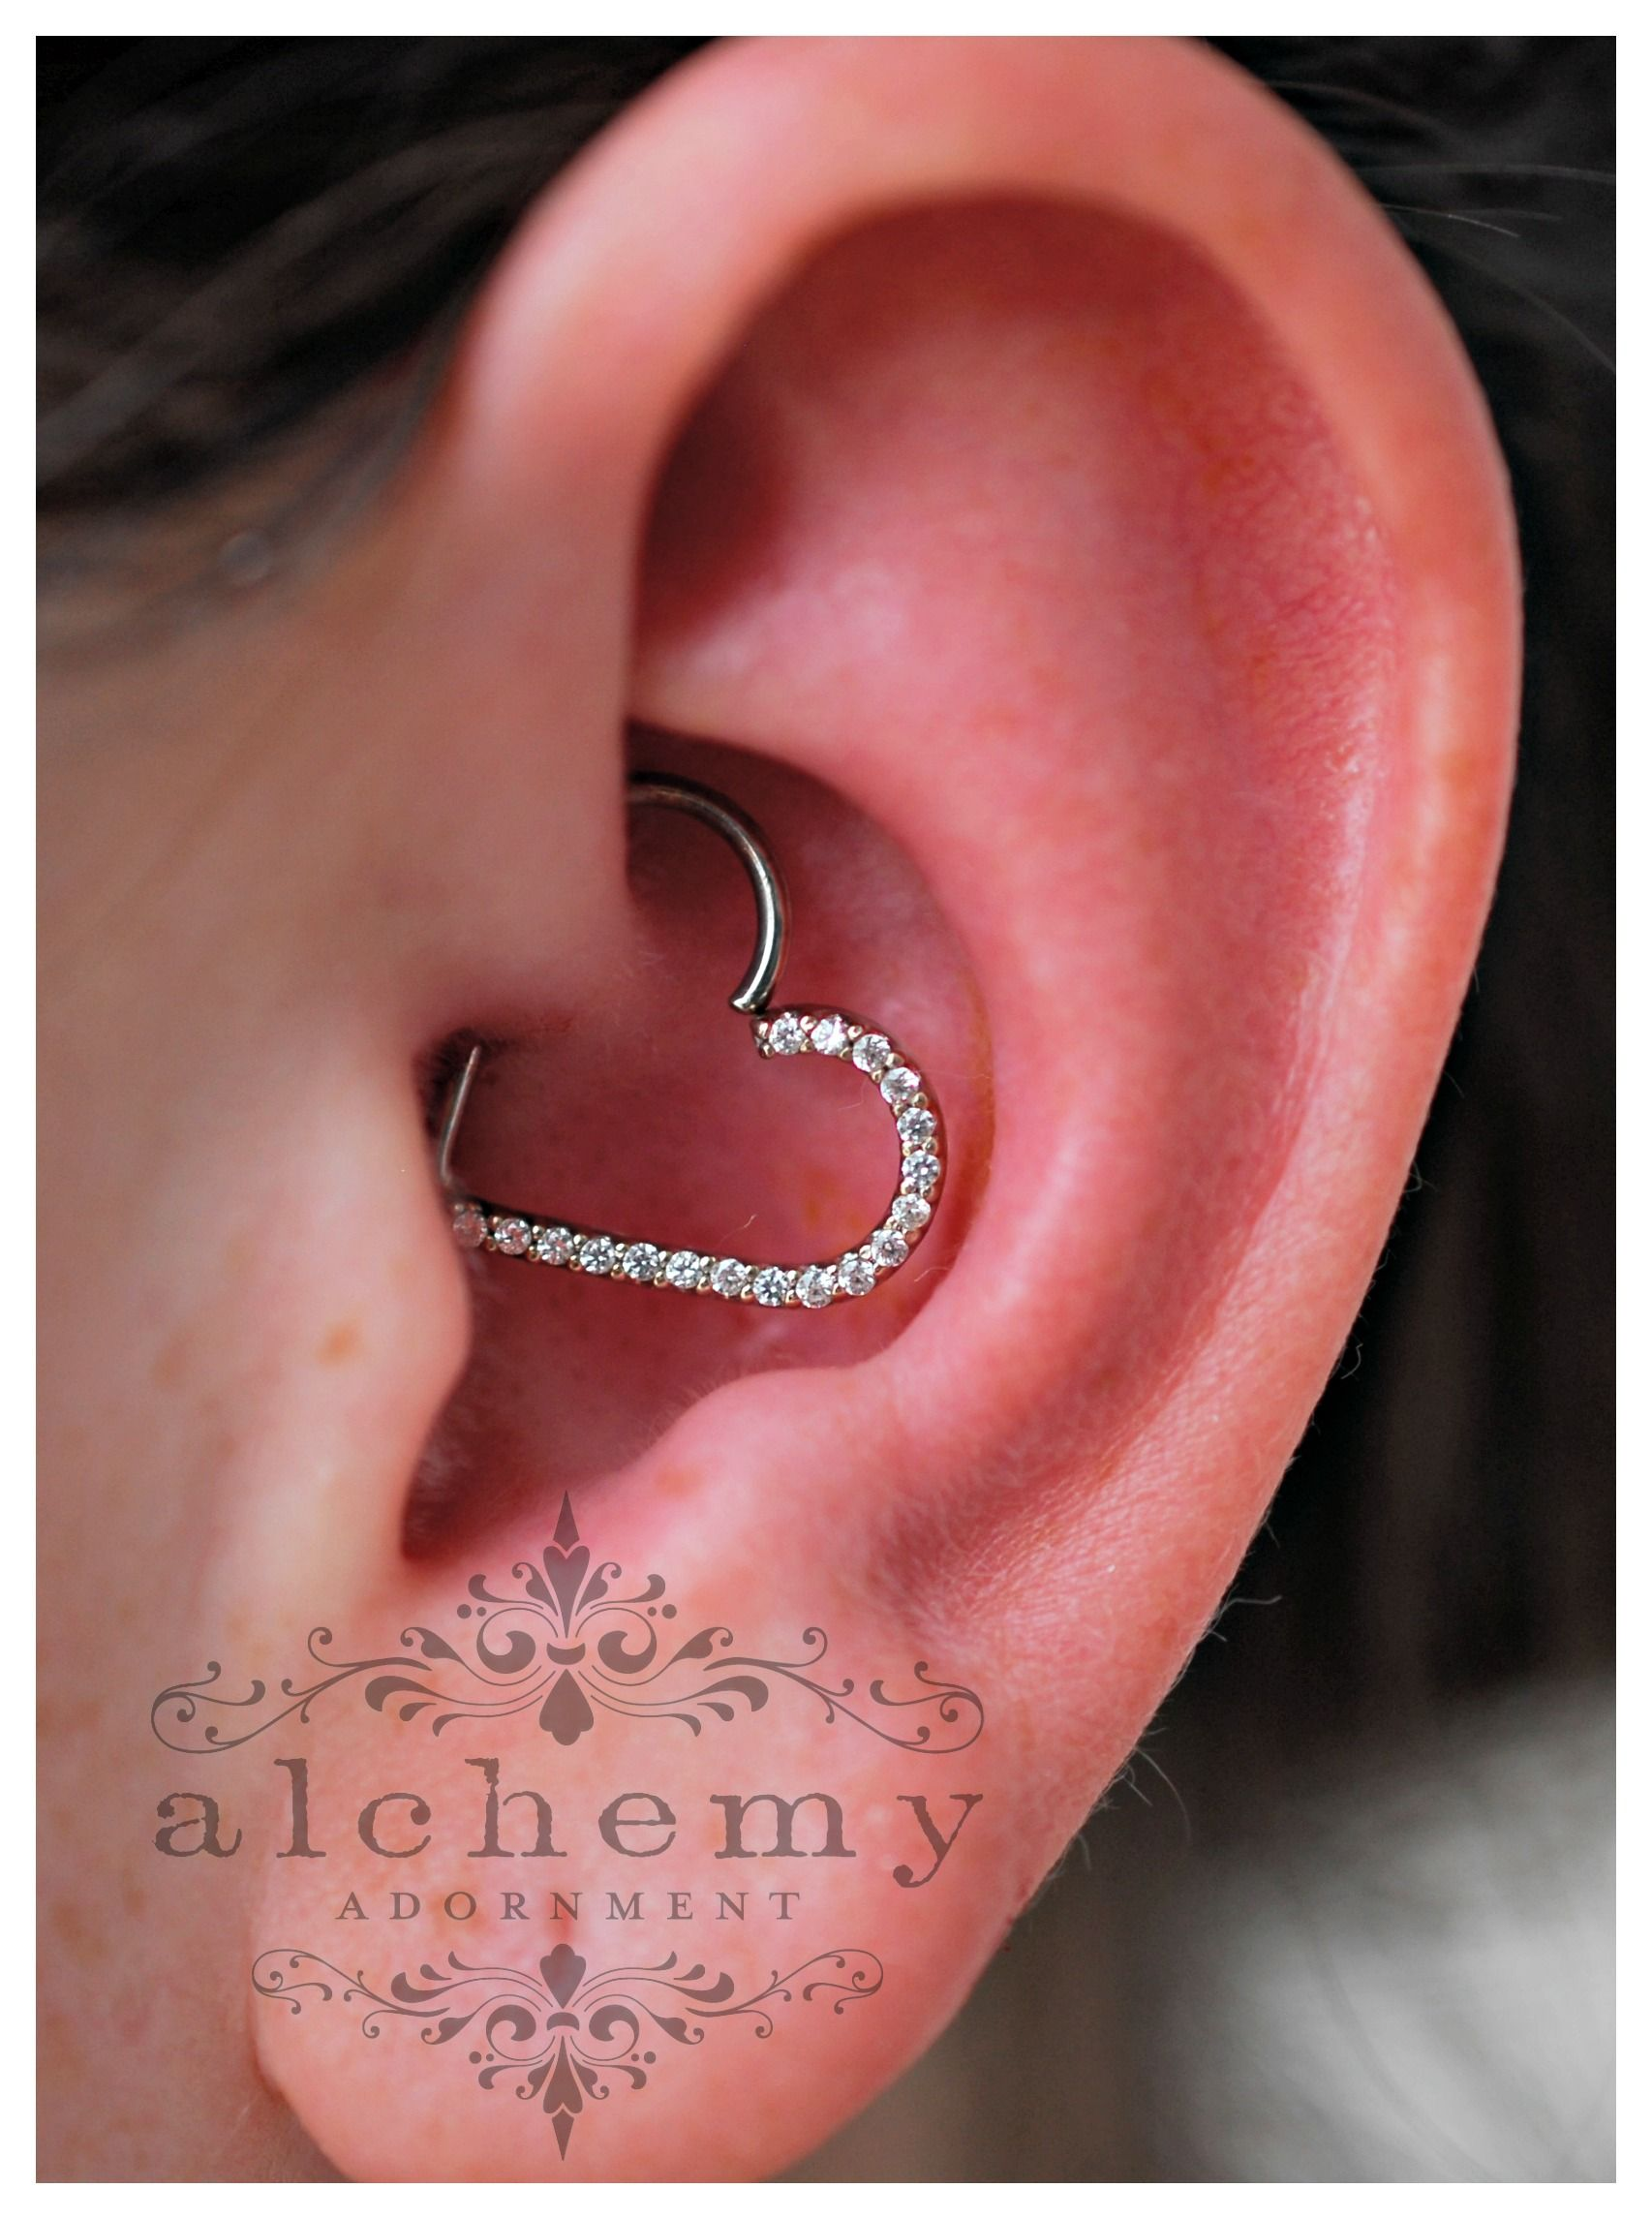 hight resolution of daith piercing by bree with an 18 gem white gold heart by alchemy adornment gorgeous